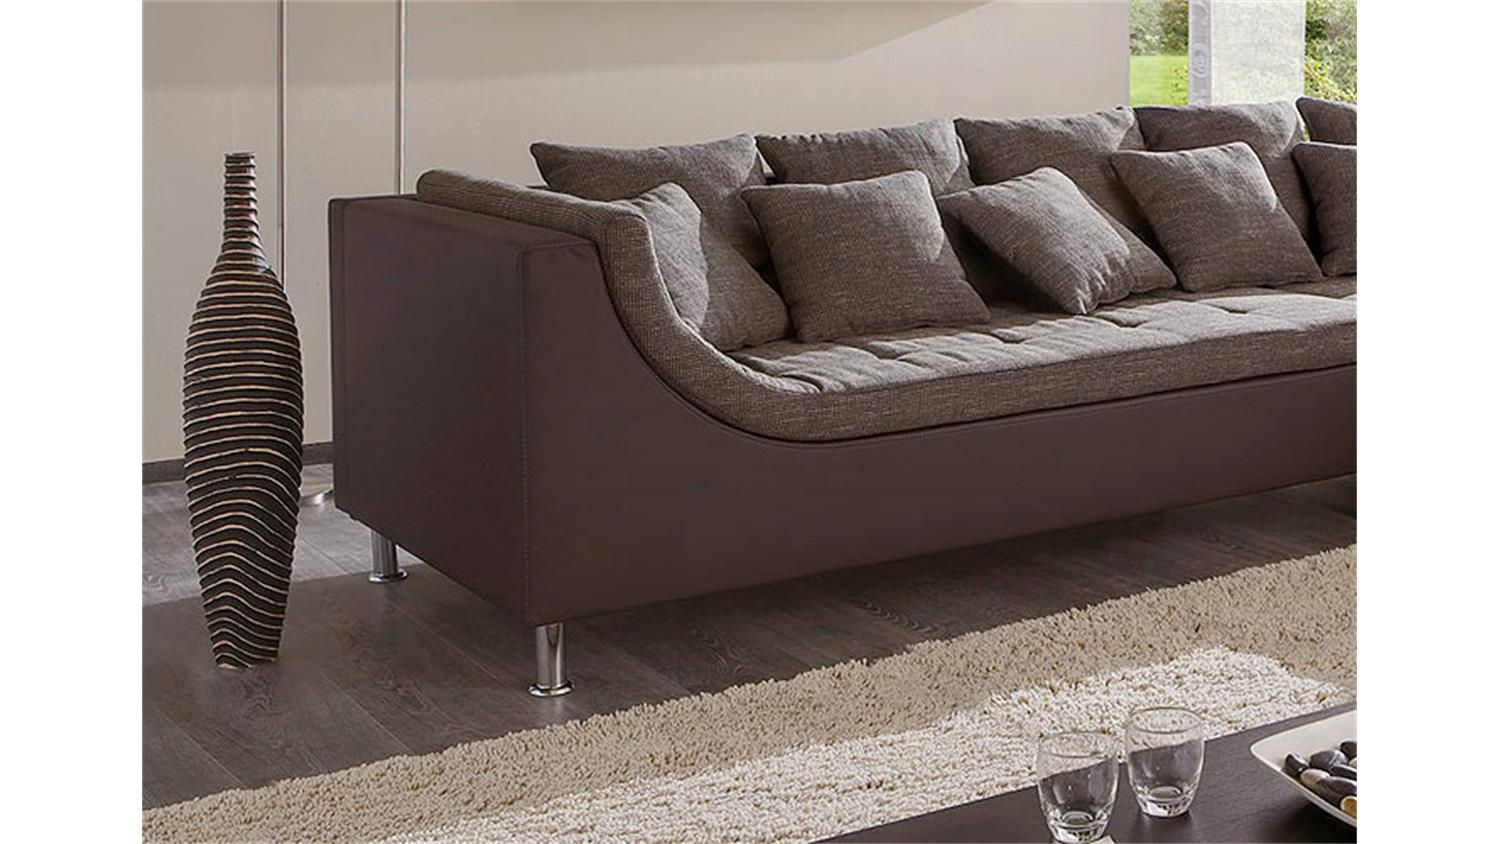 ecksofa montego sofa mit ottomane in braun 6 r ckenkissen. Black Bedroom Furniture Sets. Home Design Ideas